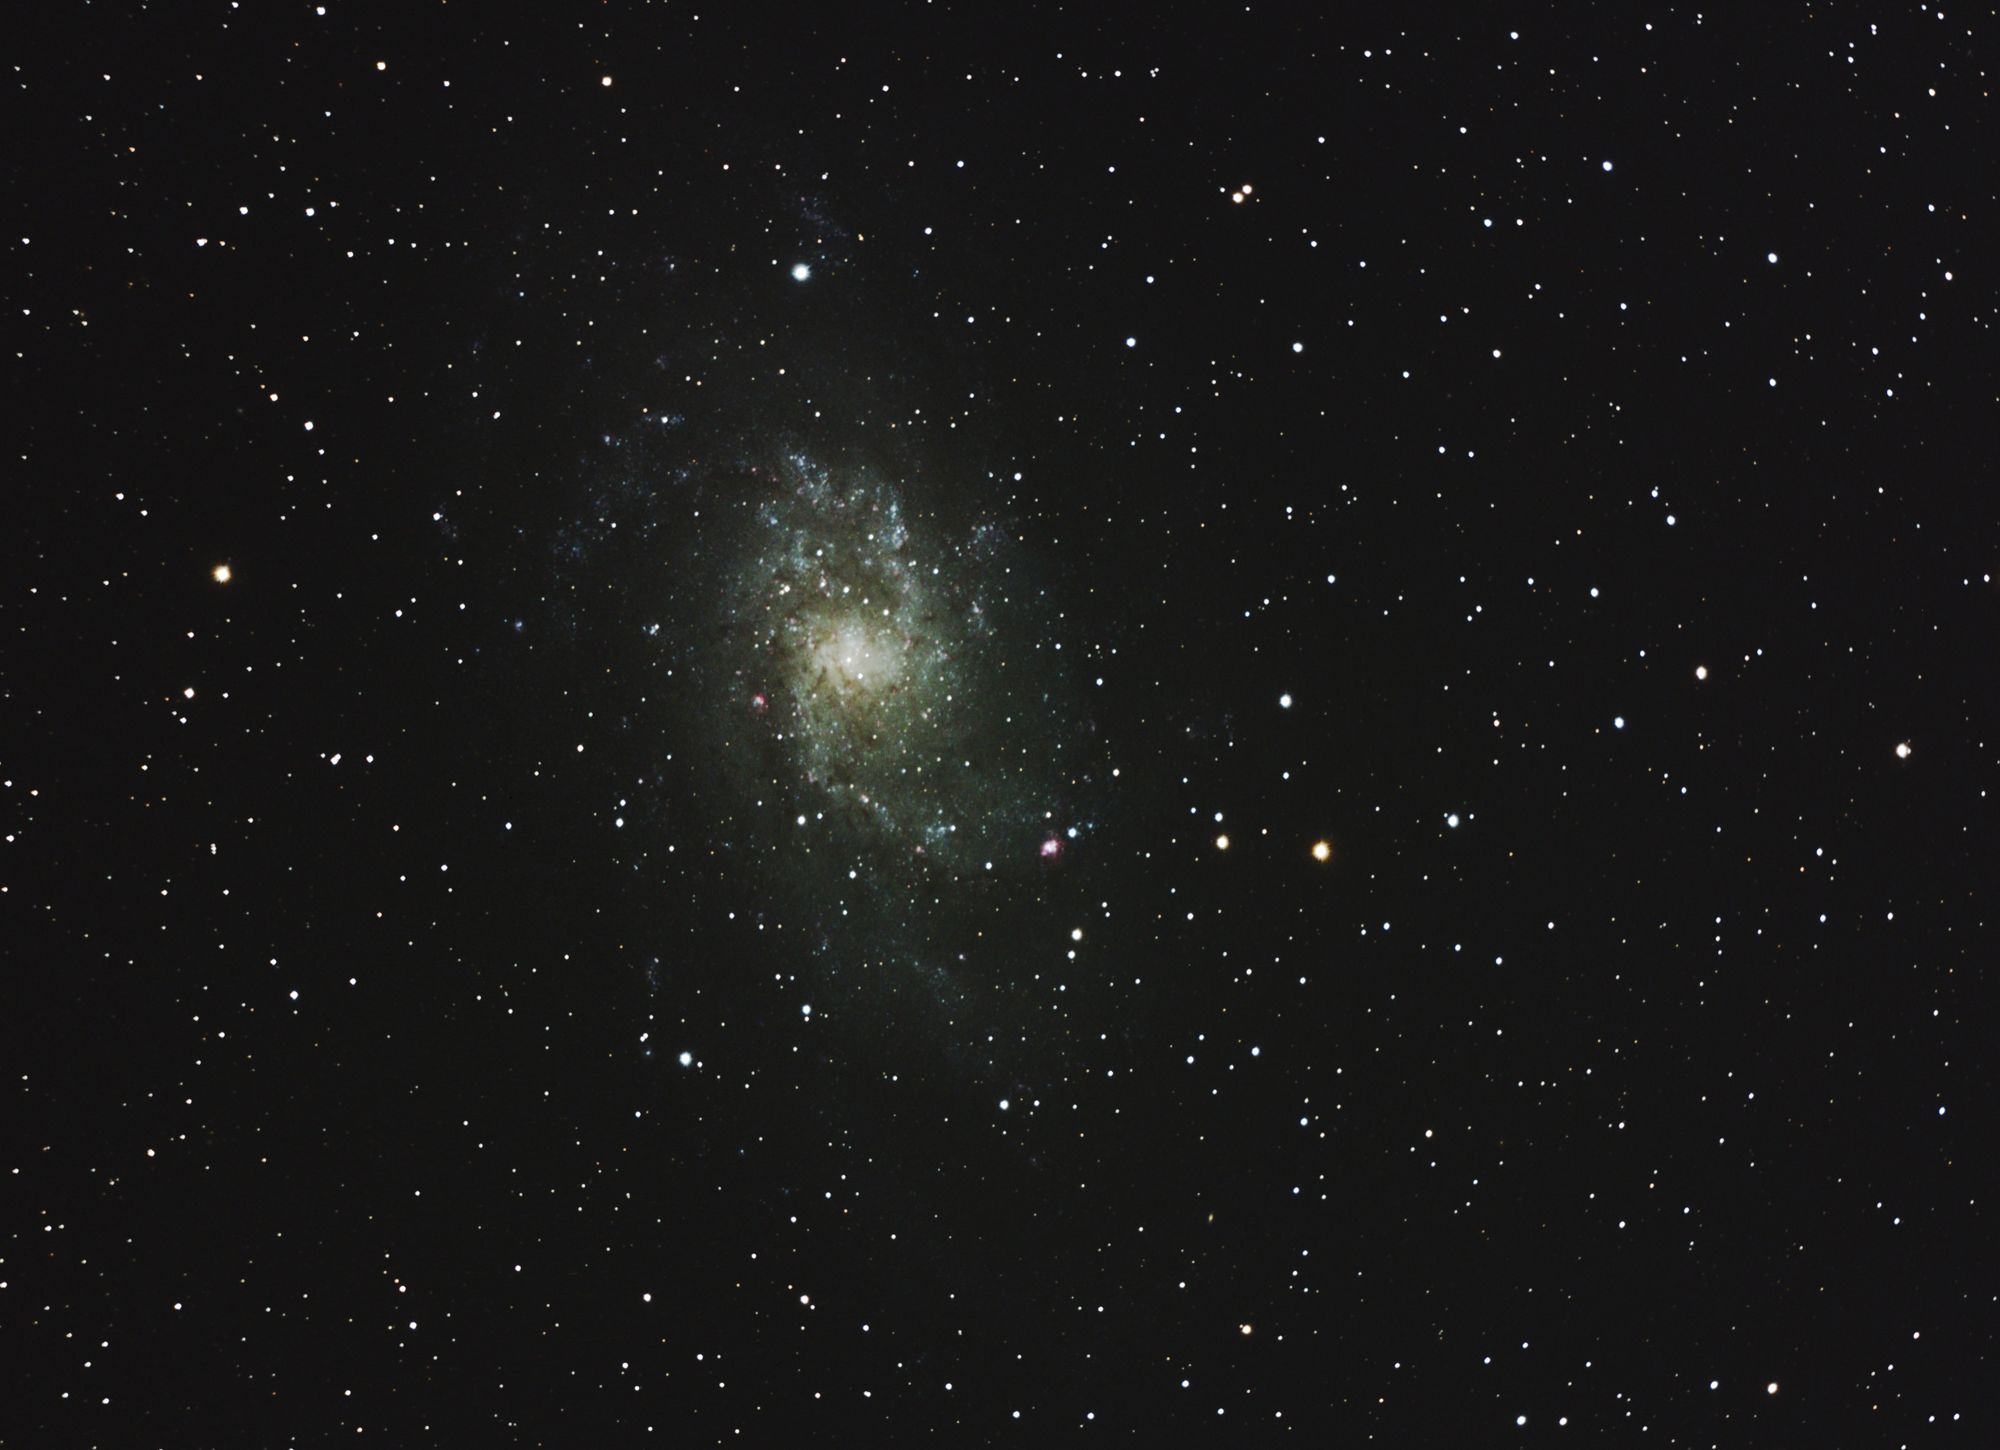 M33 - Triangulum Galaxy